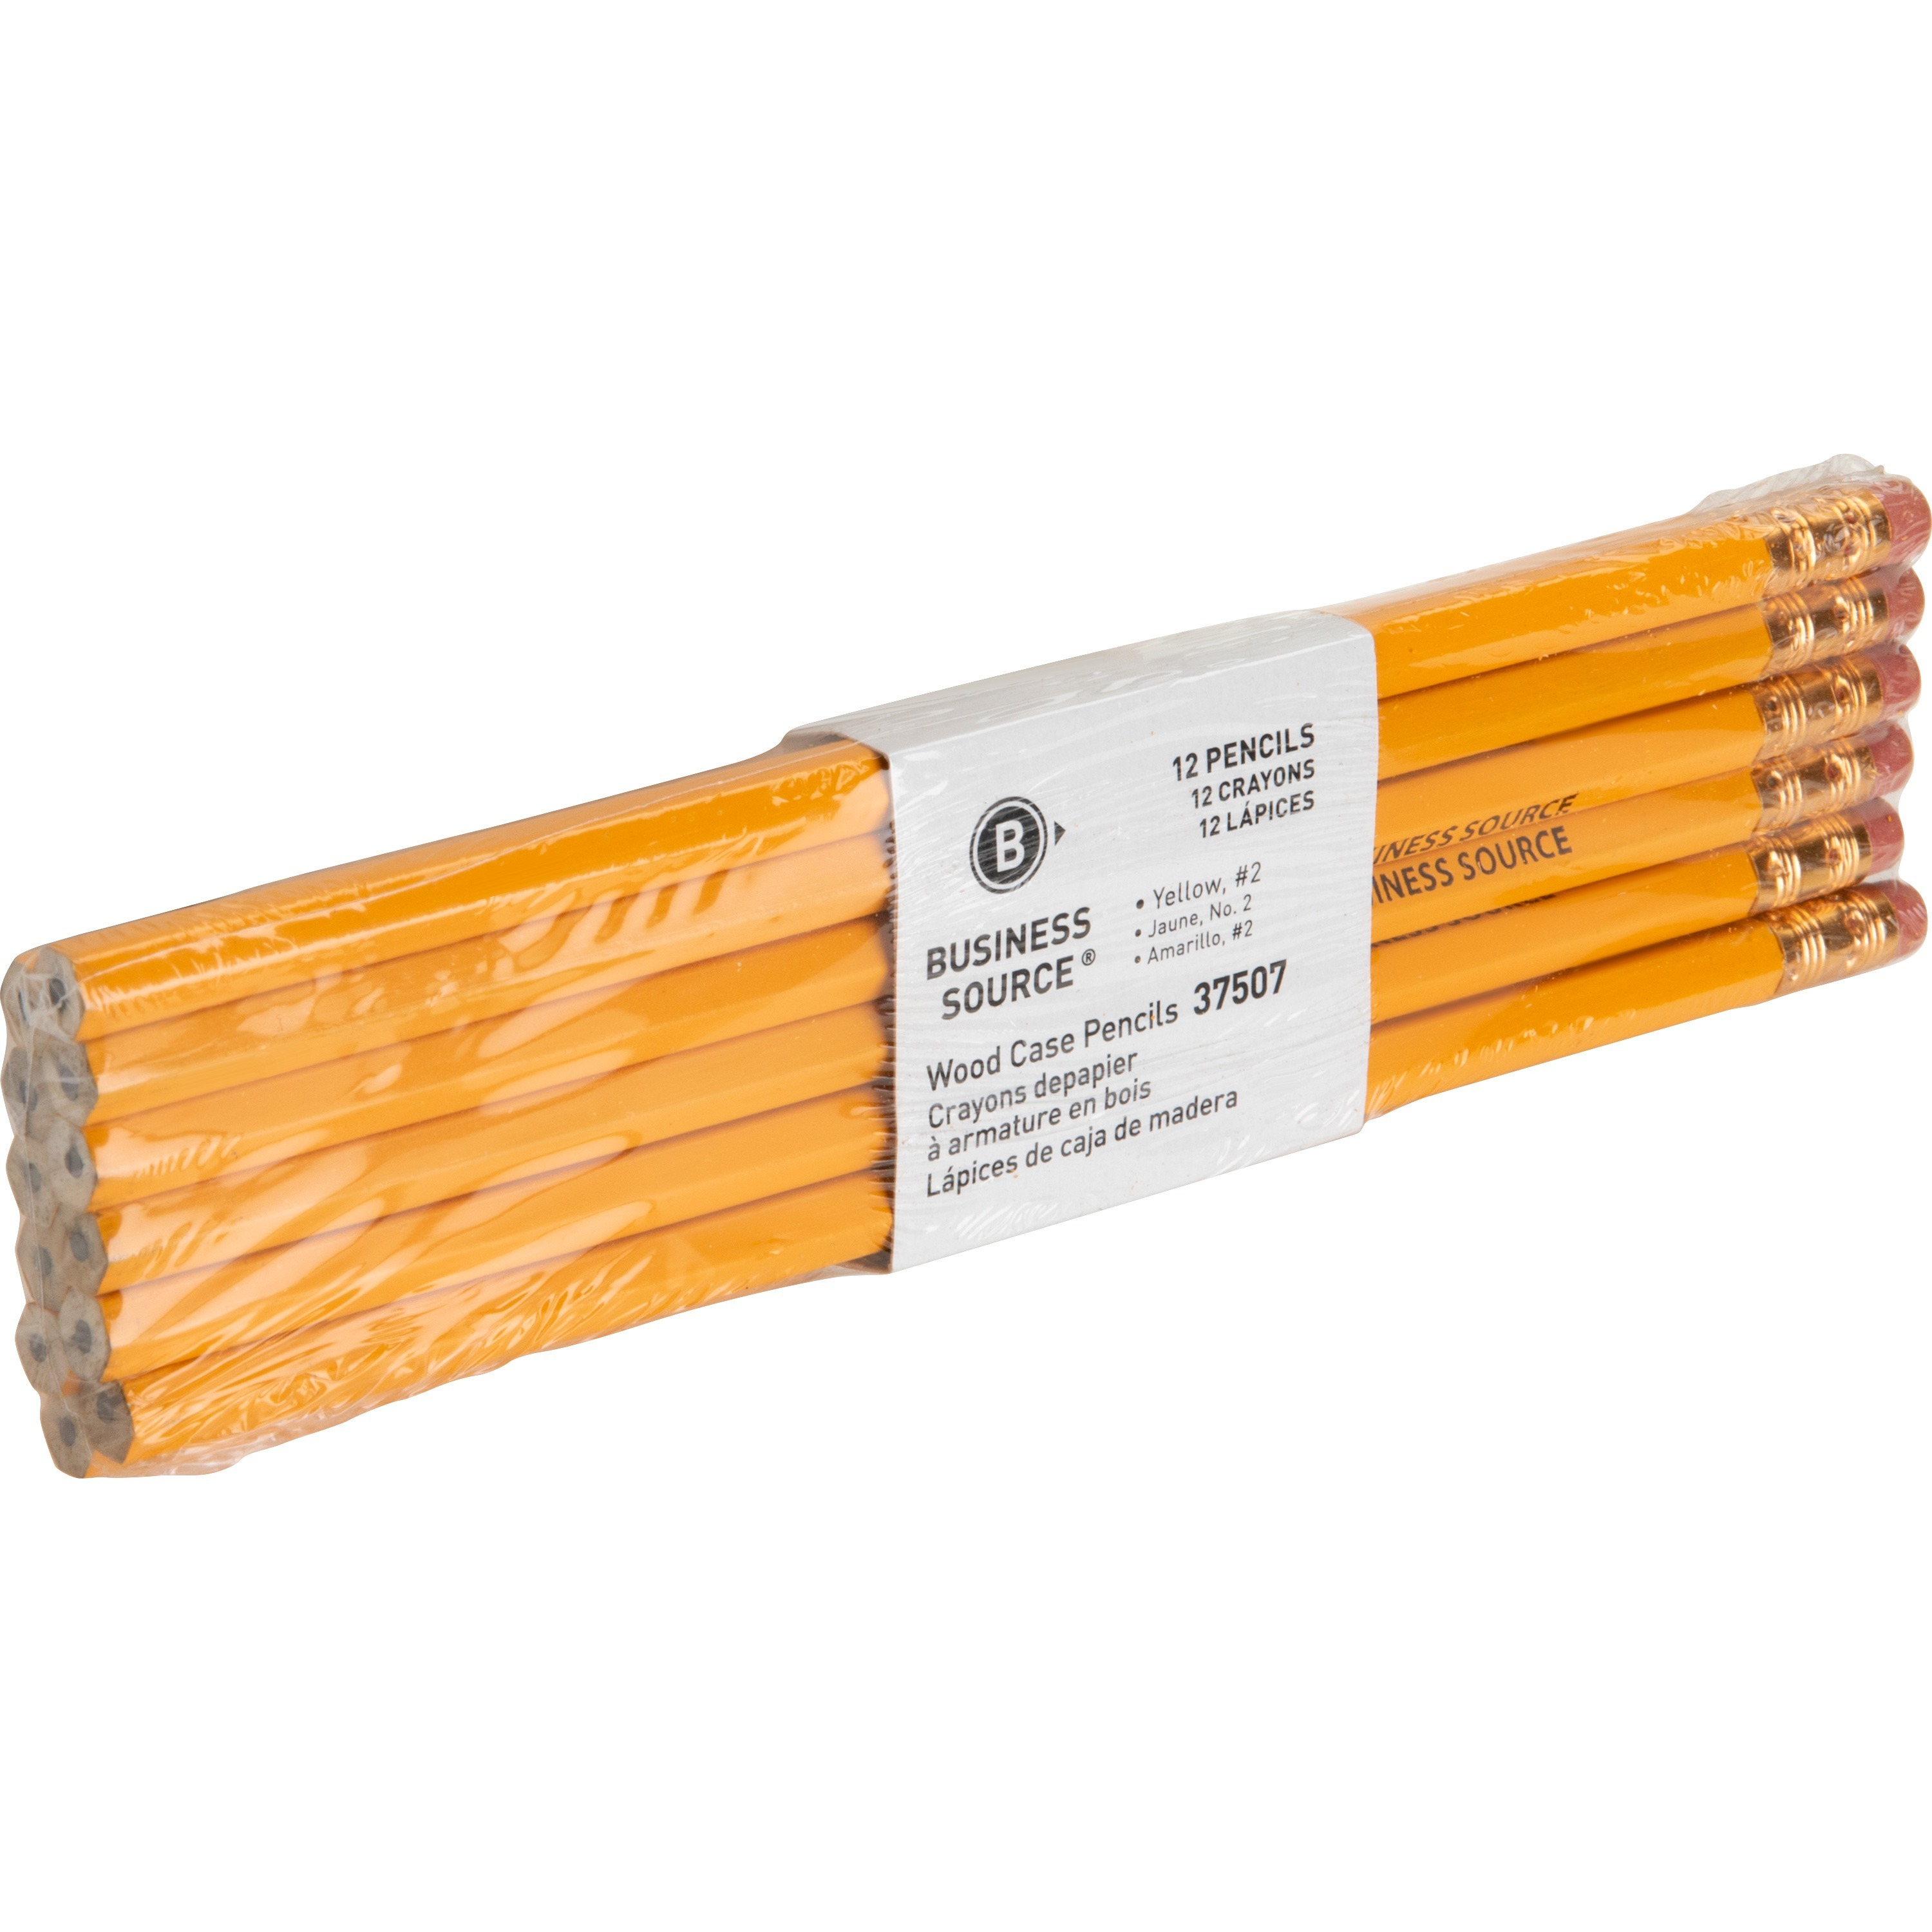 Business Source Woodcase Pencil